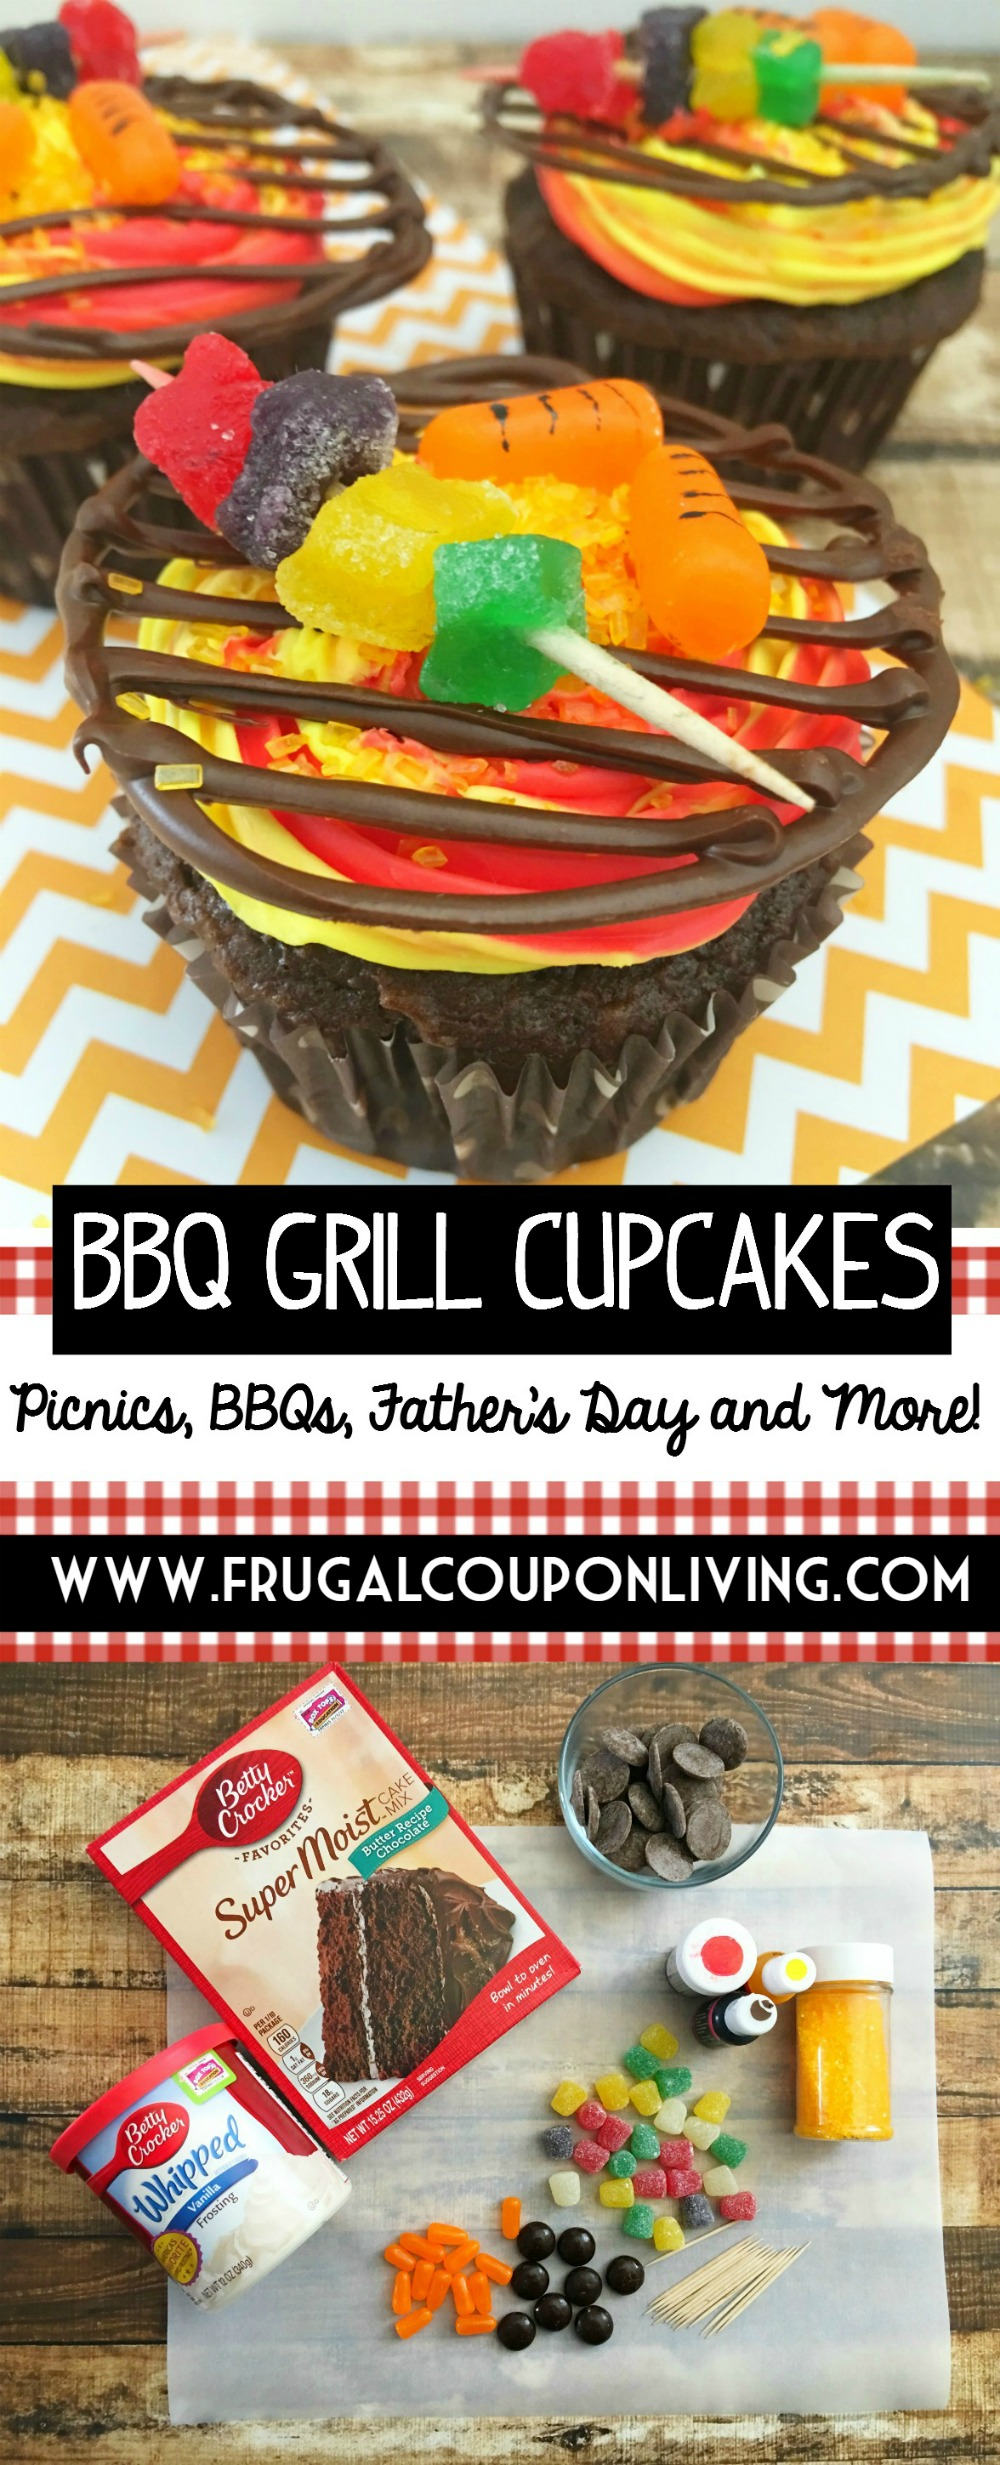 bbq-grill-cupcakes-frugal-coupon-living-shorter